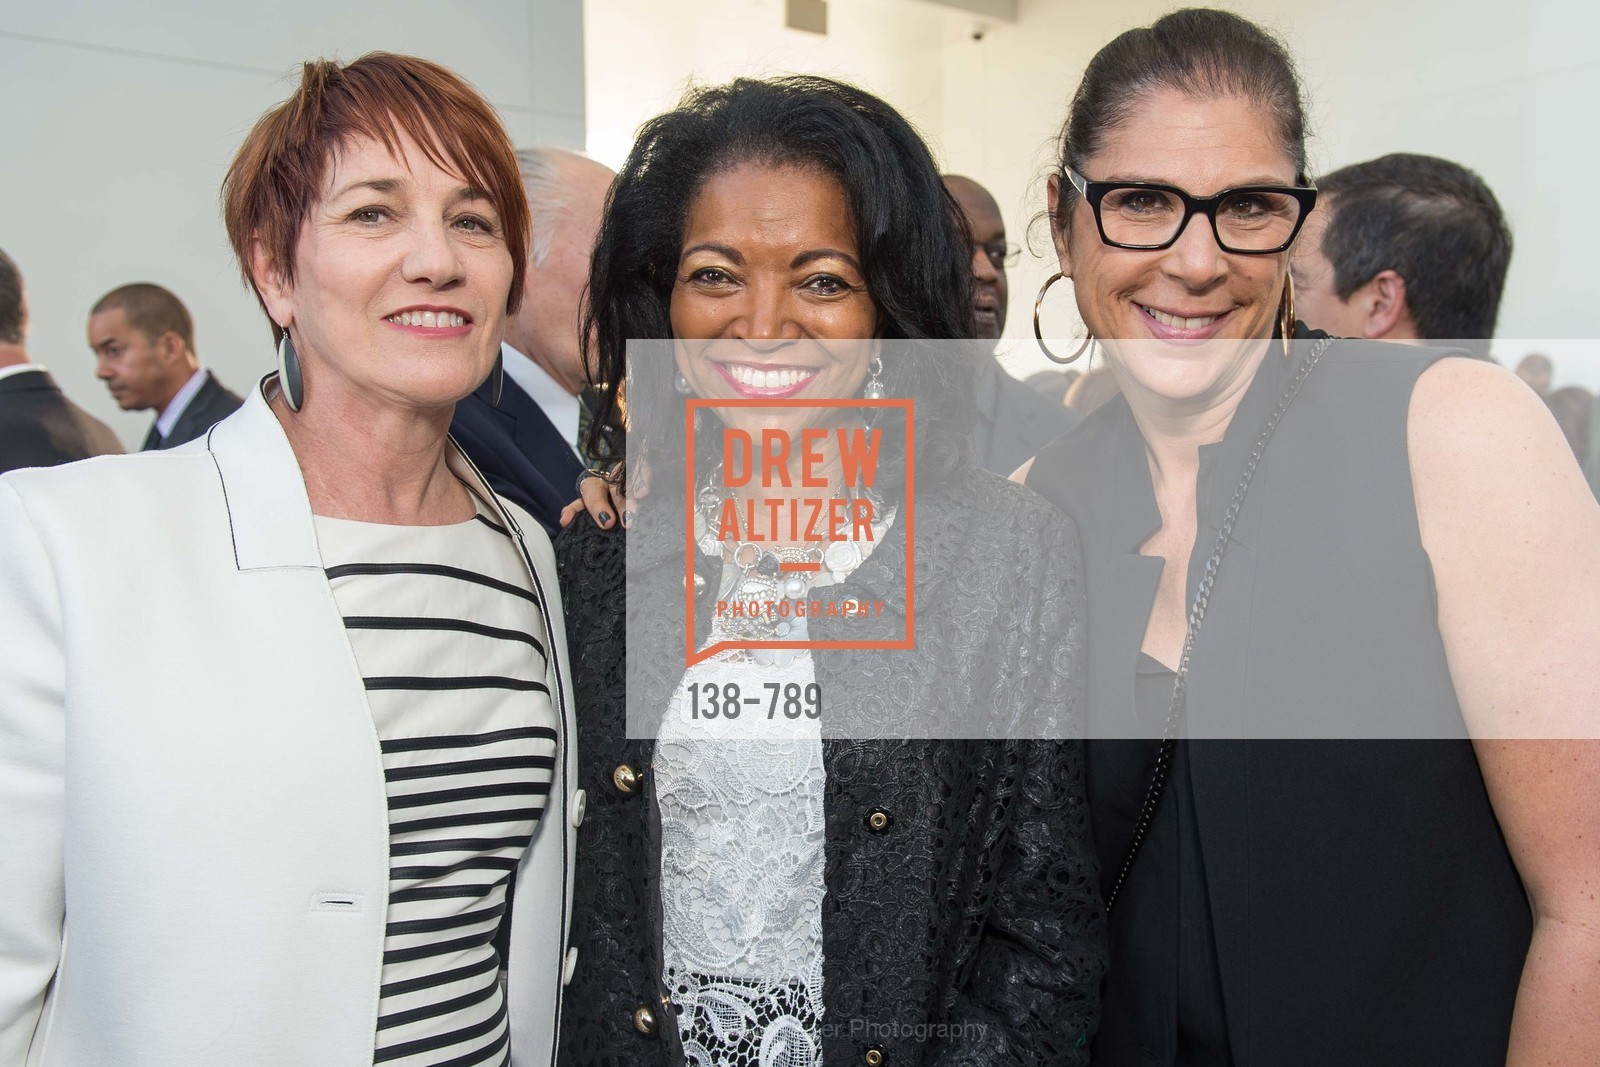 Shirley Cookston, Denise Bradley-Tyson, Amy Schoening, ALONZO KING LINE'S Ballet Spring Gala 2015, US, April 12th, 2015,Drew Altizer, Drew Altizer Photography, full-service event agency, private events, San Francisco photographer, photographer California